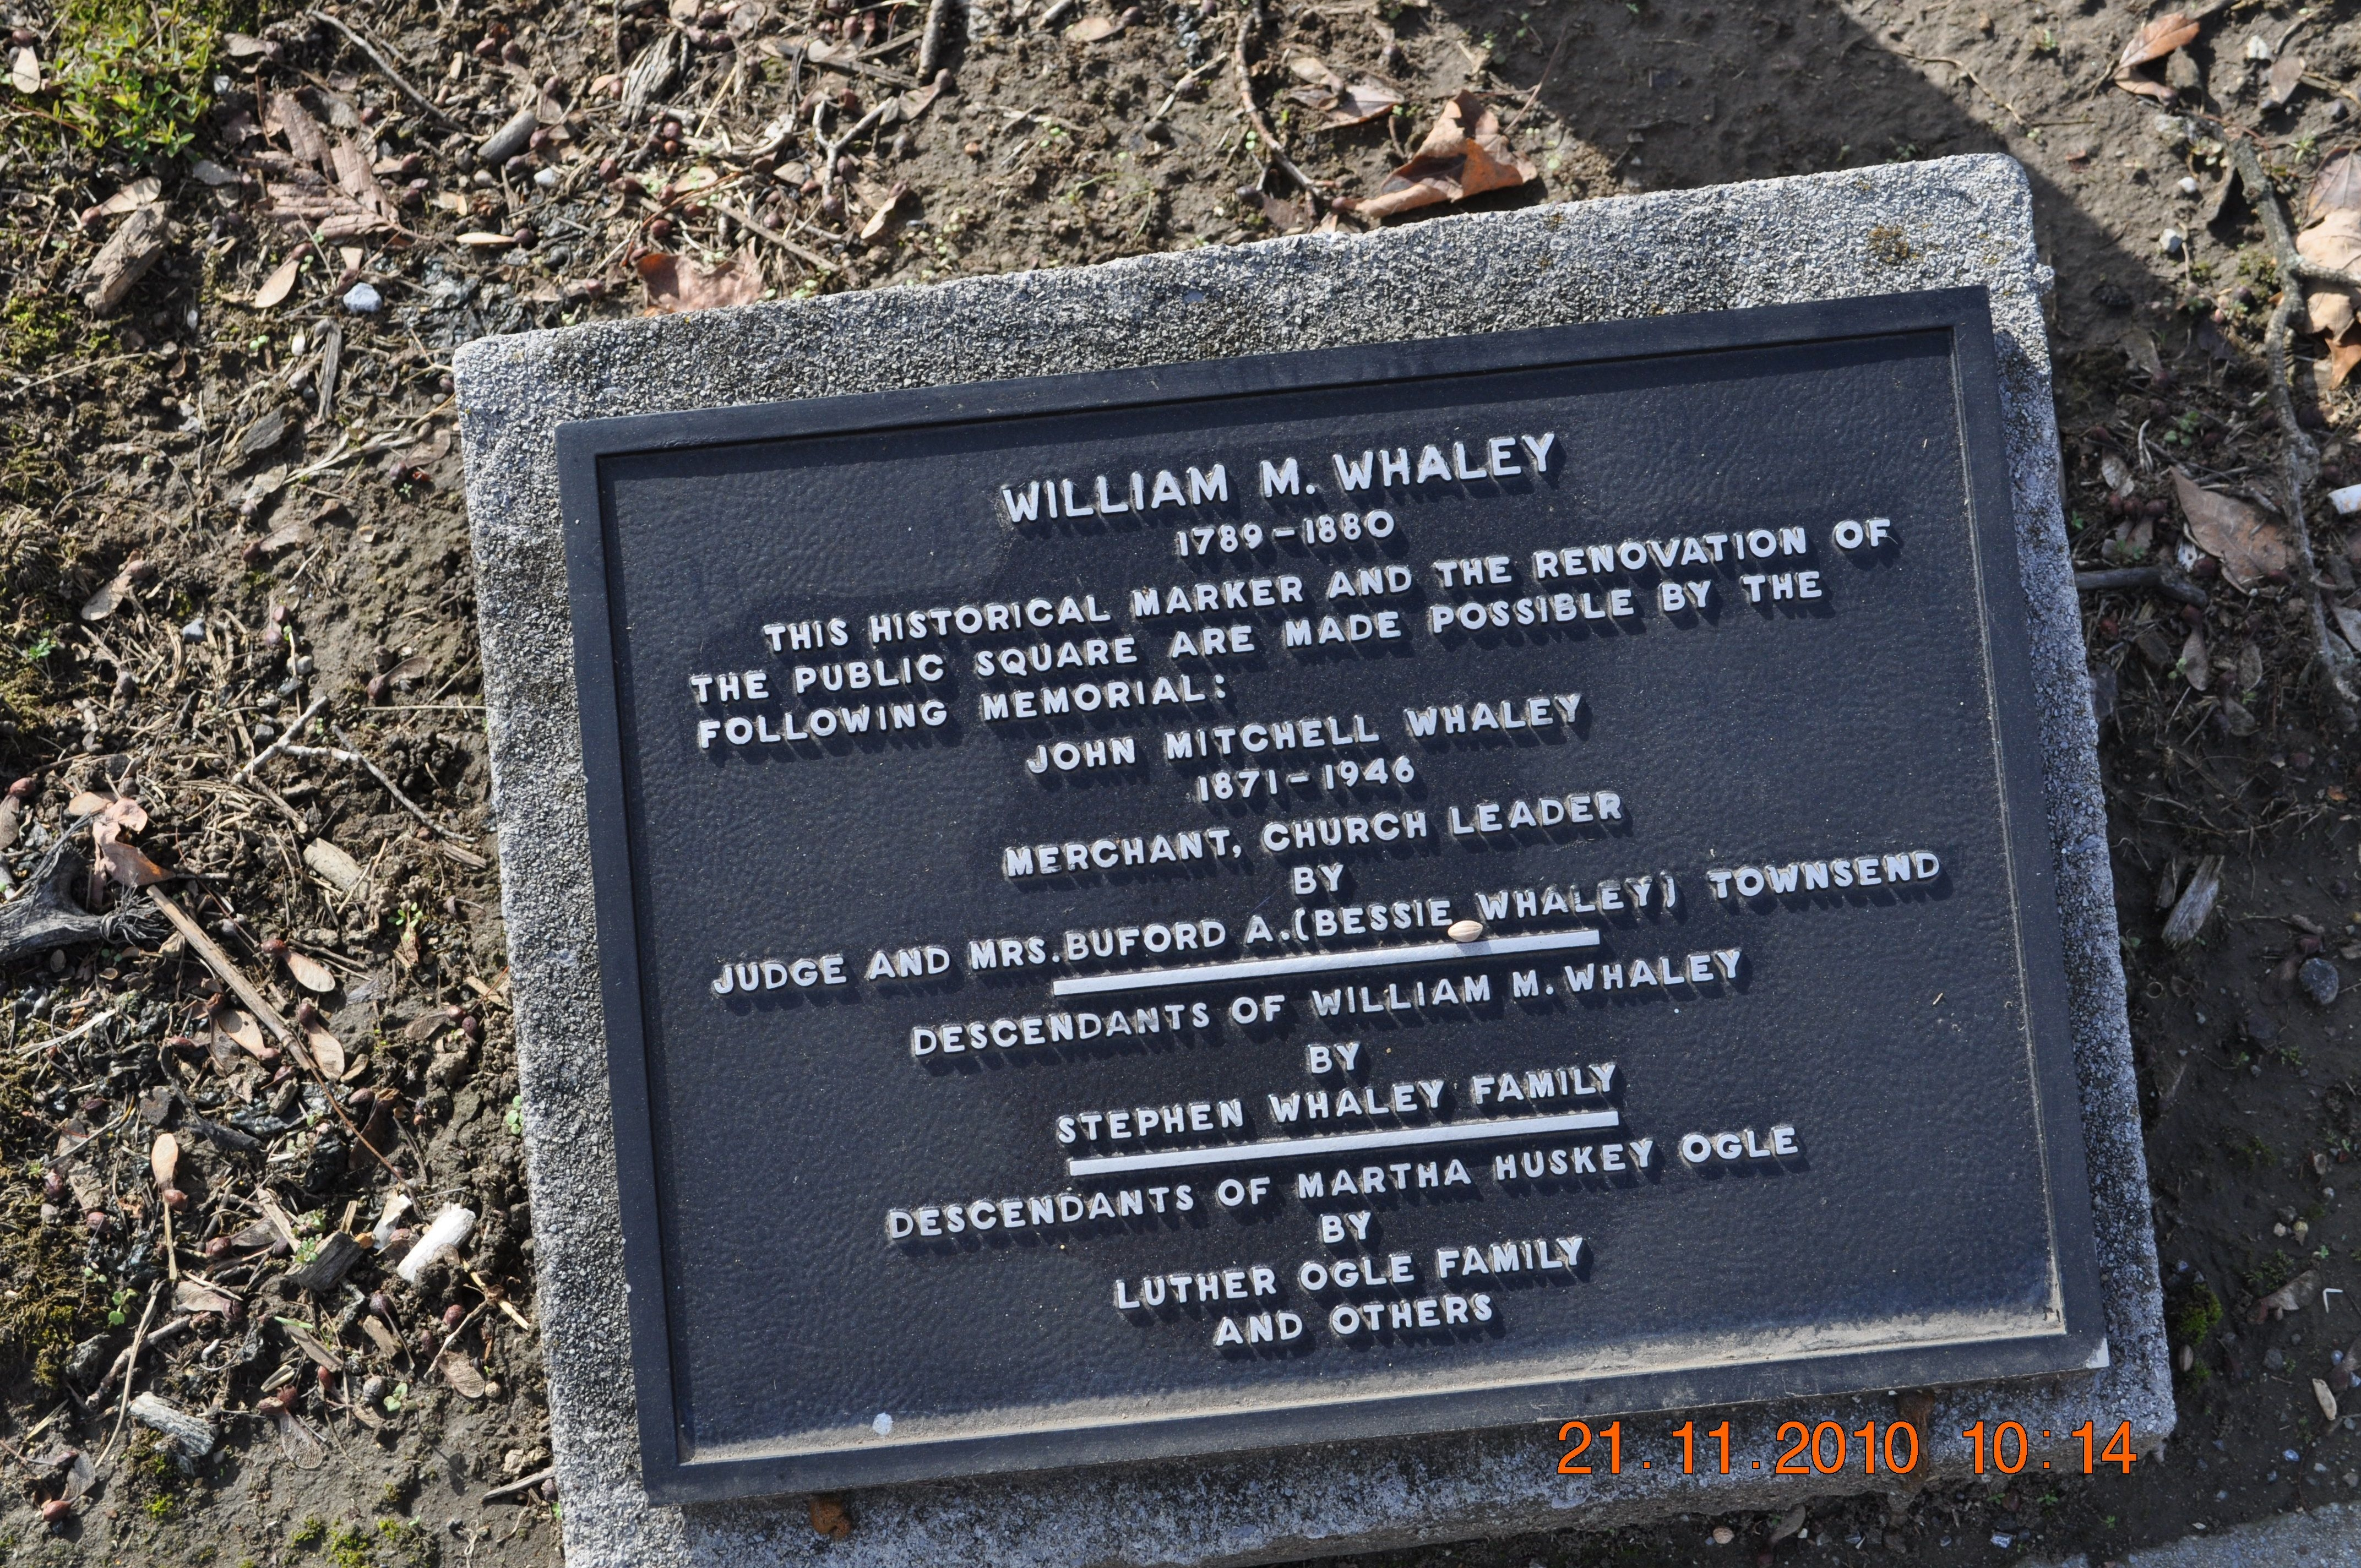 William M. Whaley Marker